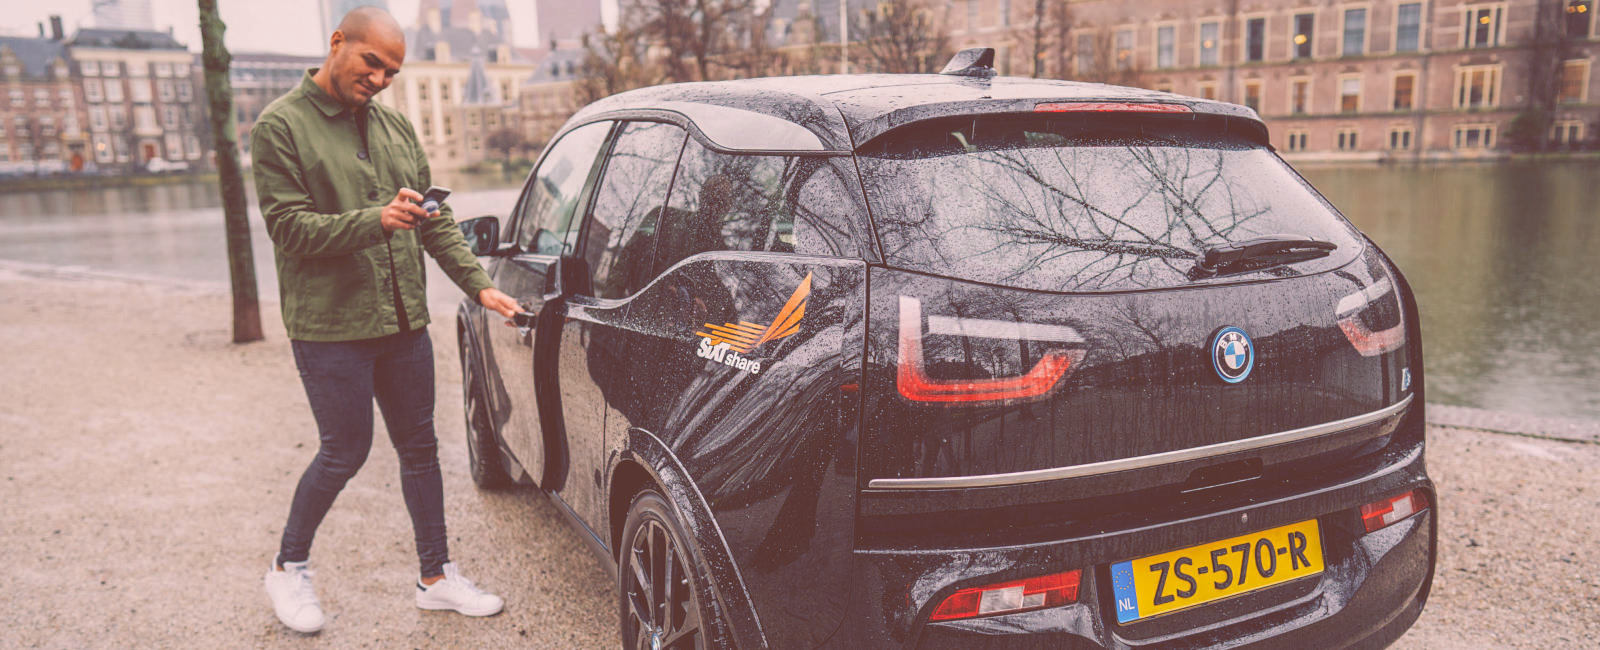 sixt share carsharing den haag 1